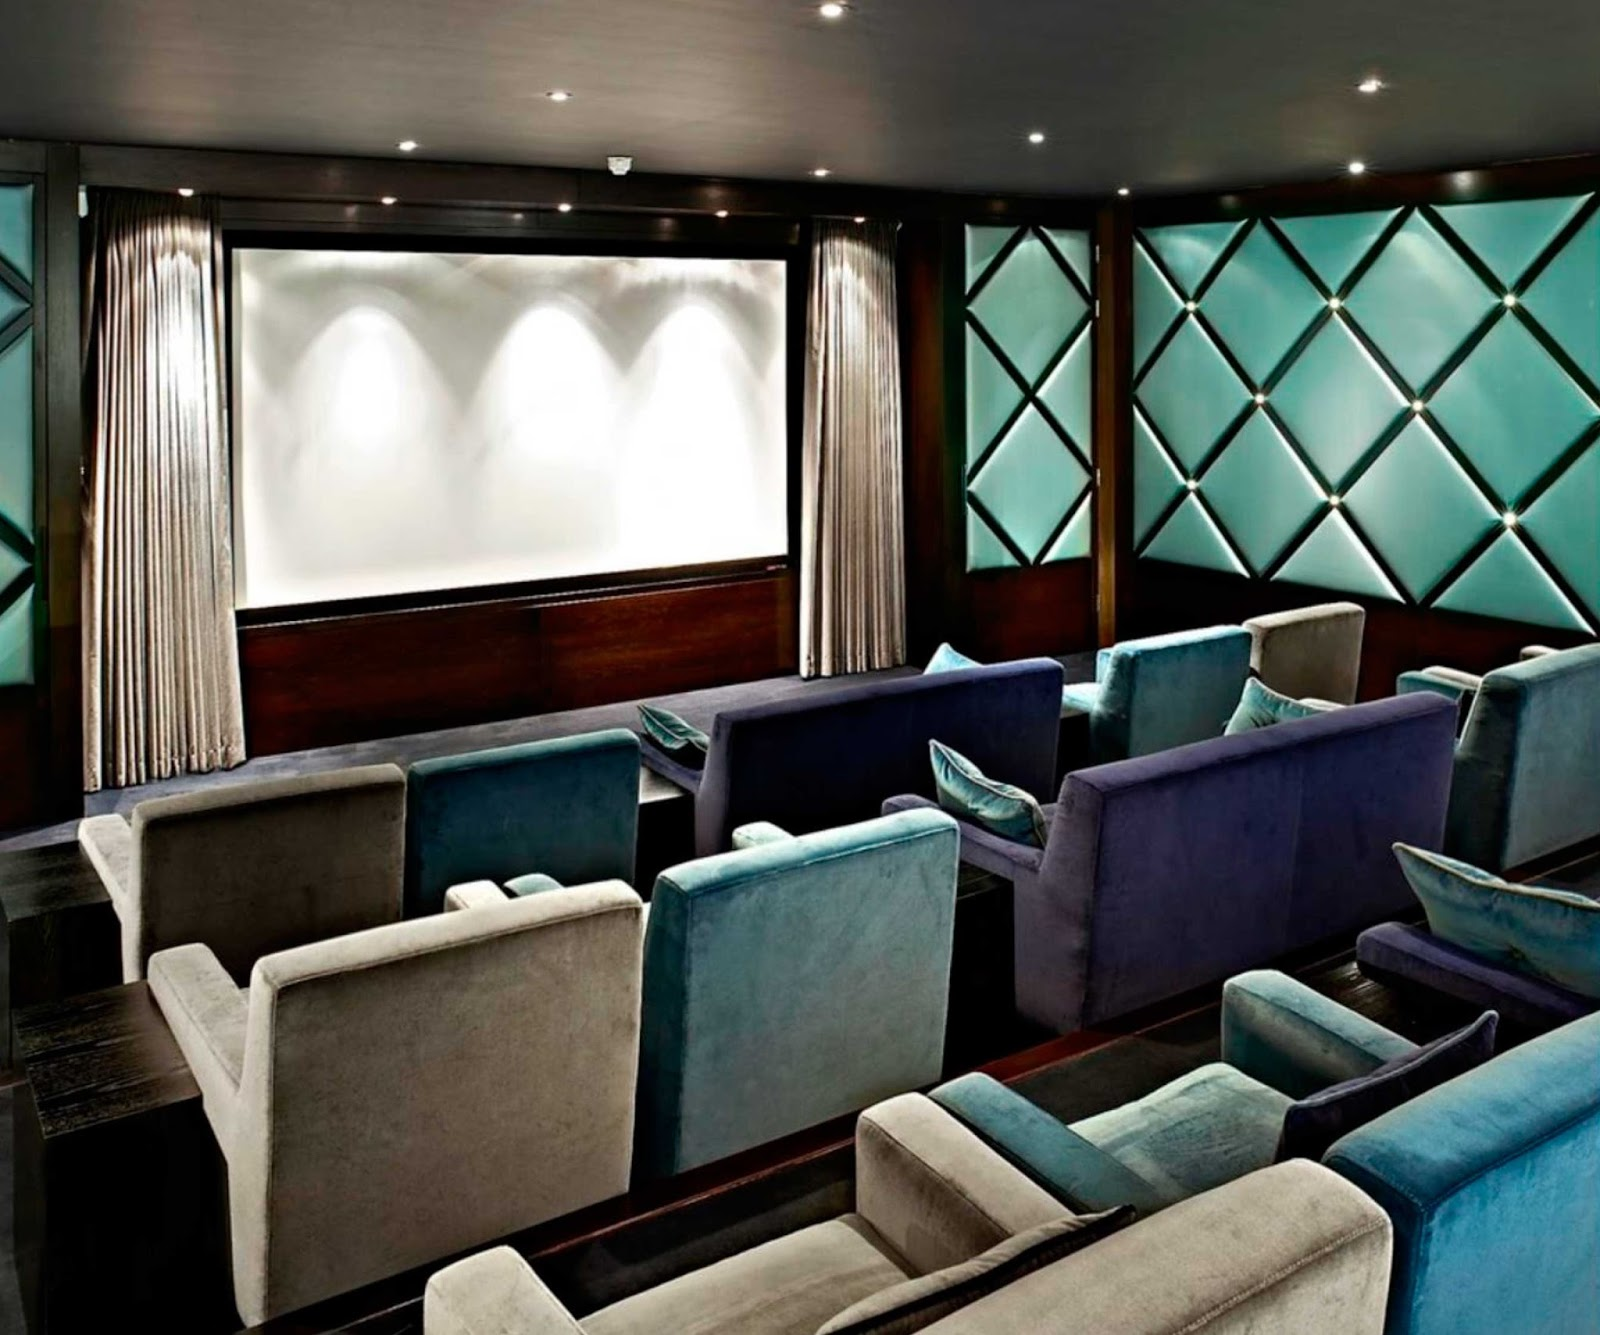 Home Theatre What Better Way To Protect And Conceal The Screen With Curtains On A Silent Gliss Autoglide Track That Can Be Operated Remotely From